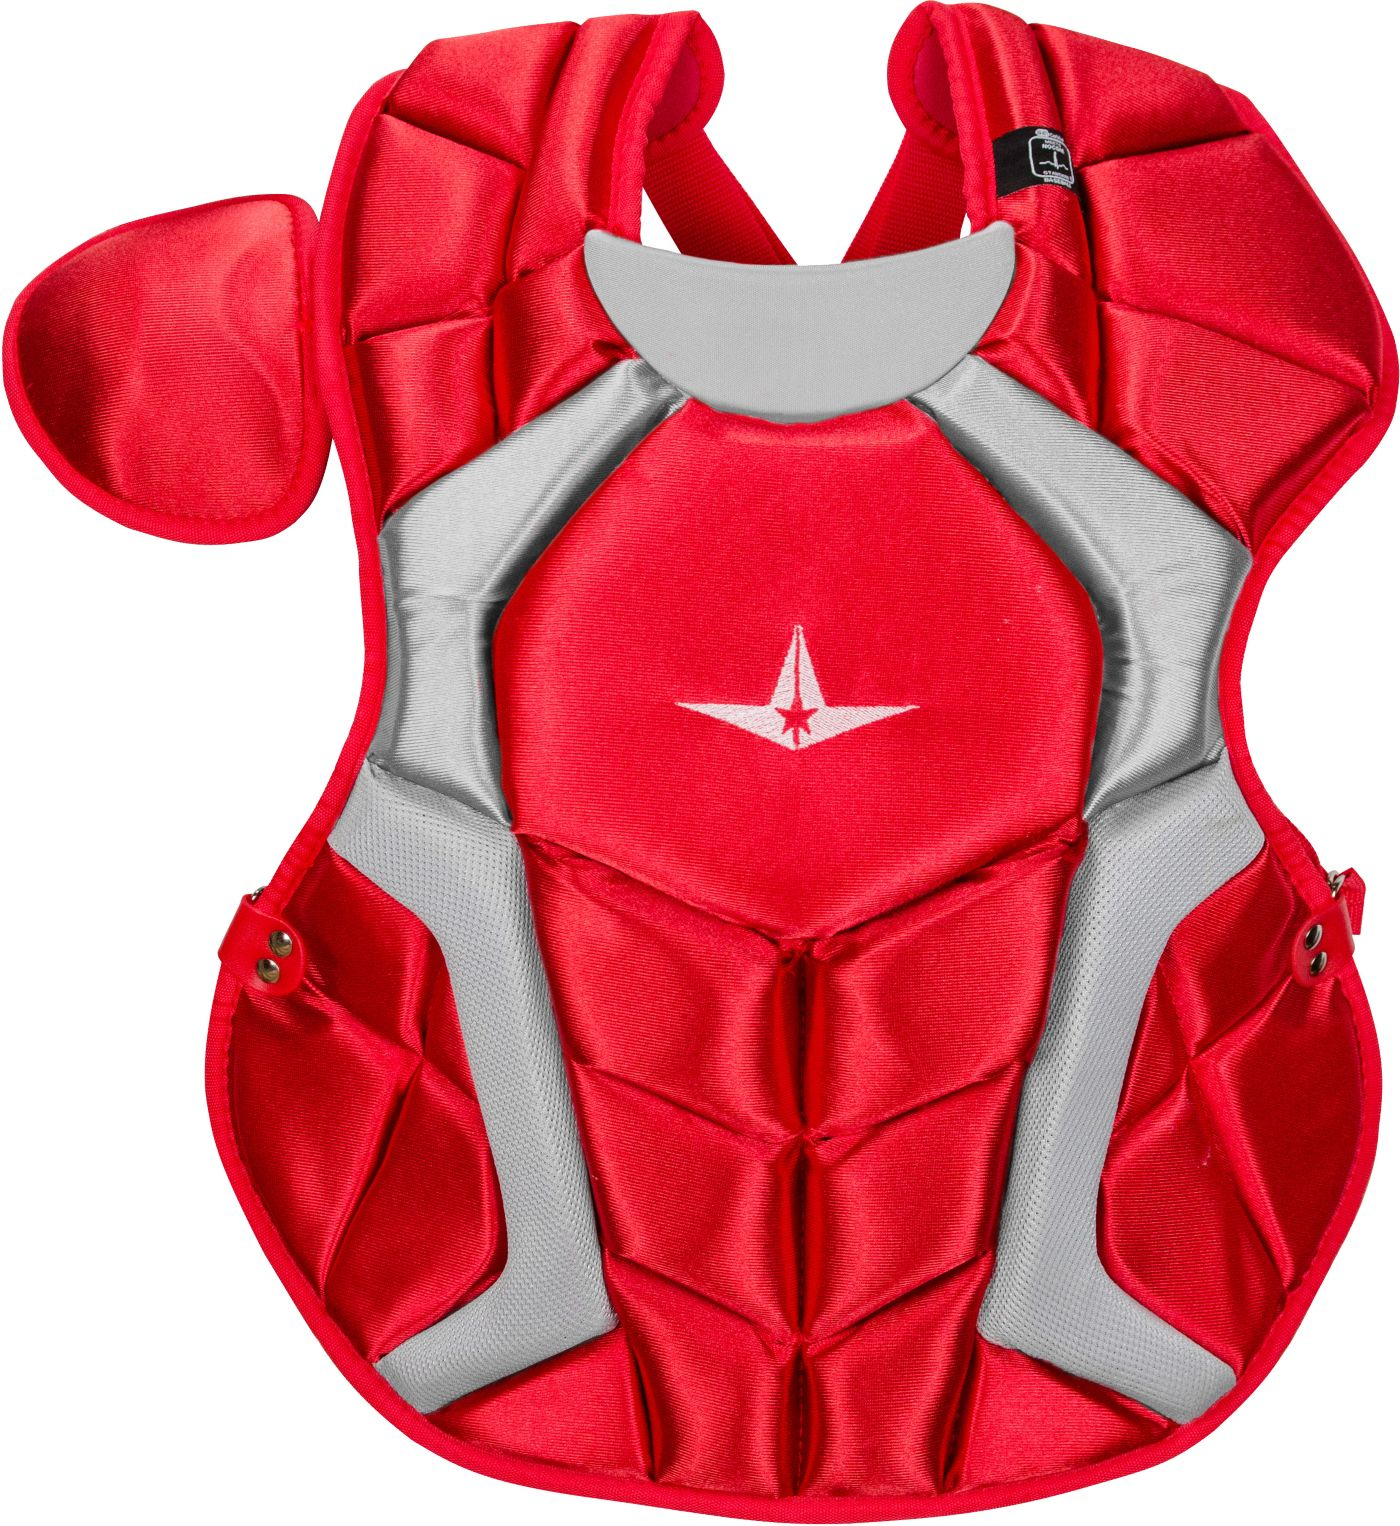 All-Star Youth 14.5'' Player Series Chest Protector